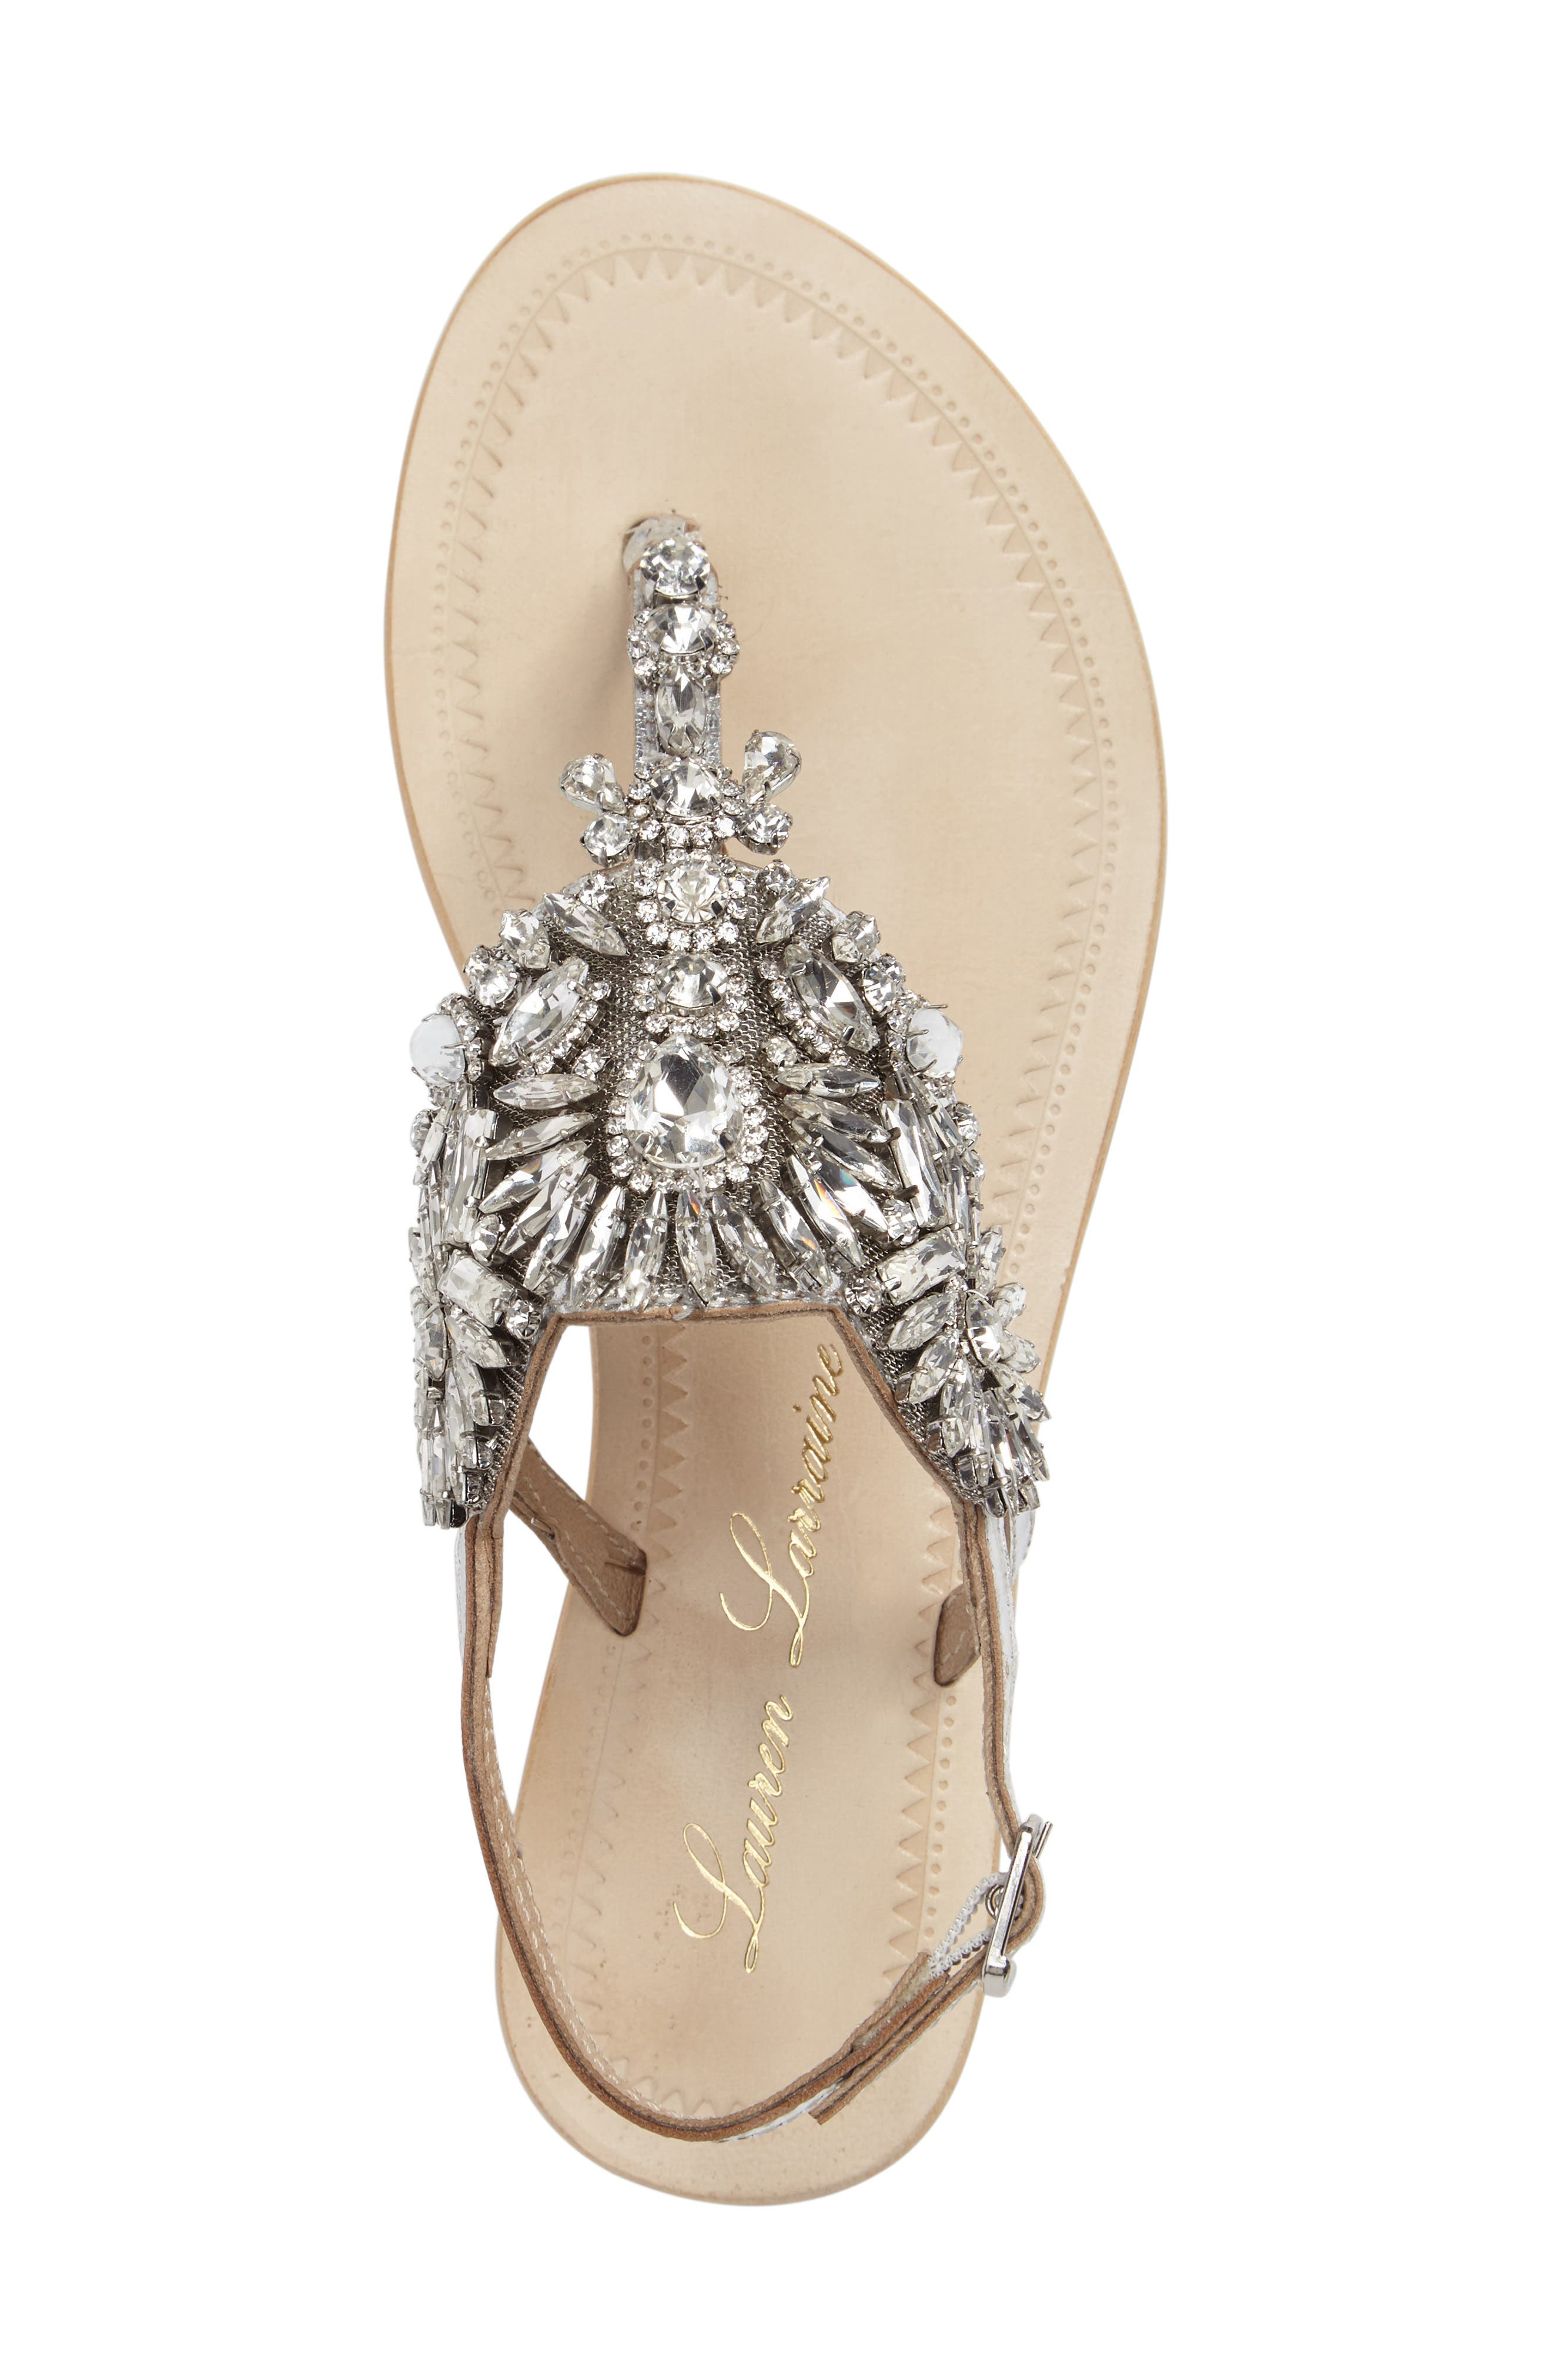 Vera Embellished Sandal,                             Alternate thumbnail 3, color,                             SILVER LEATHER